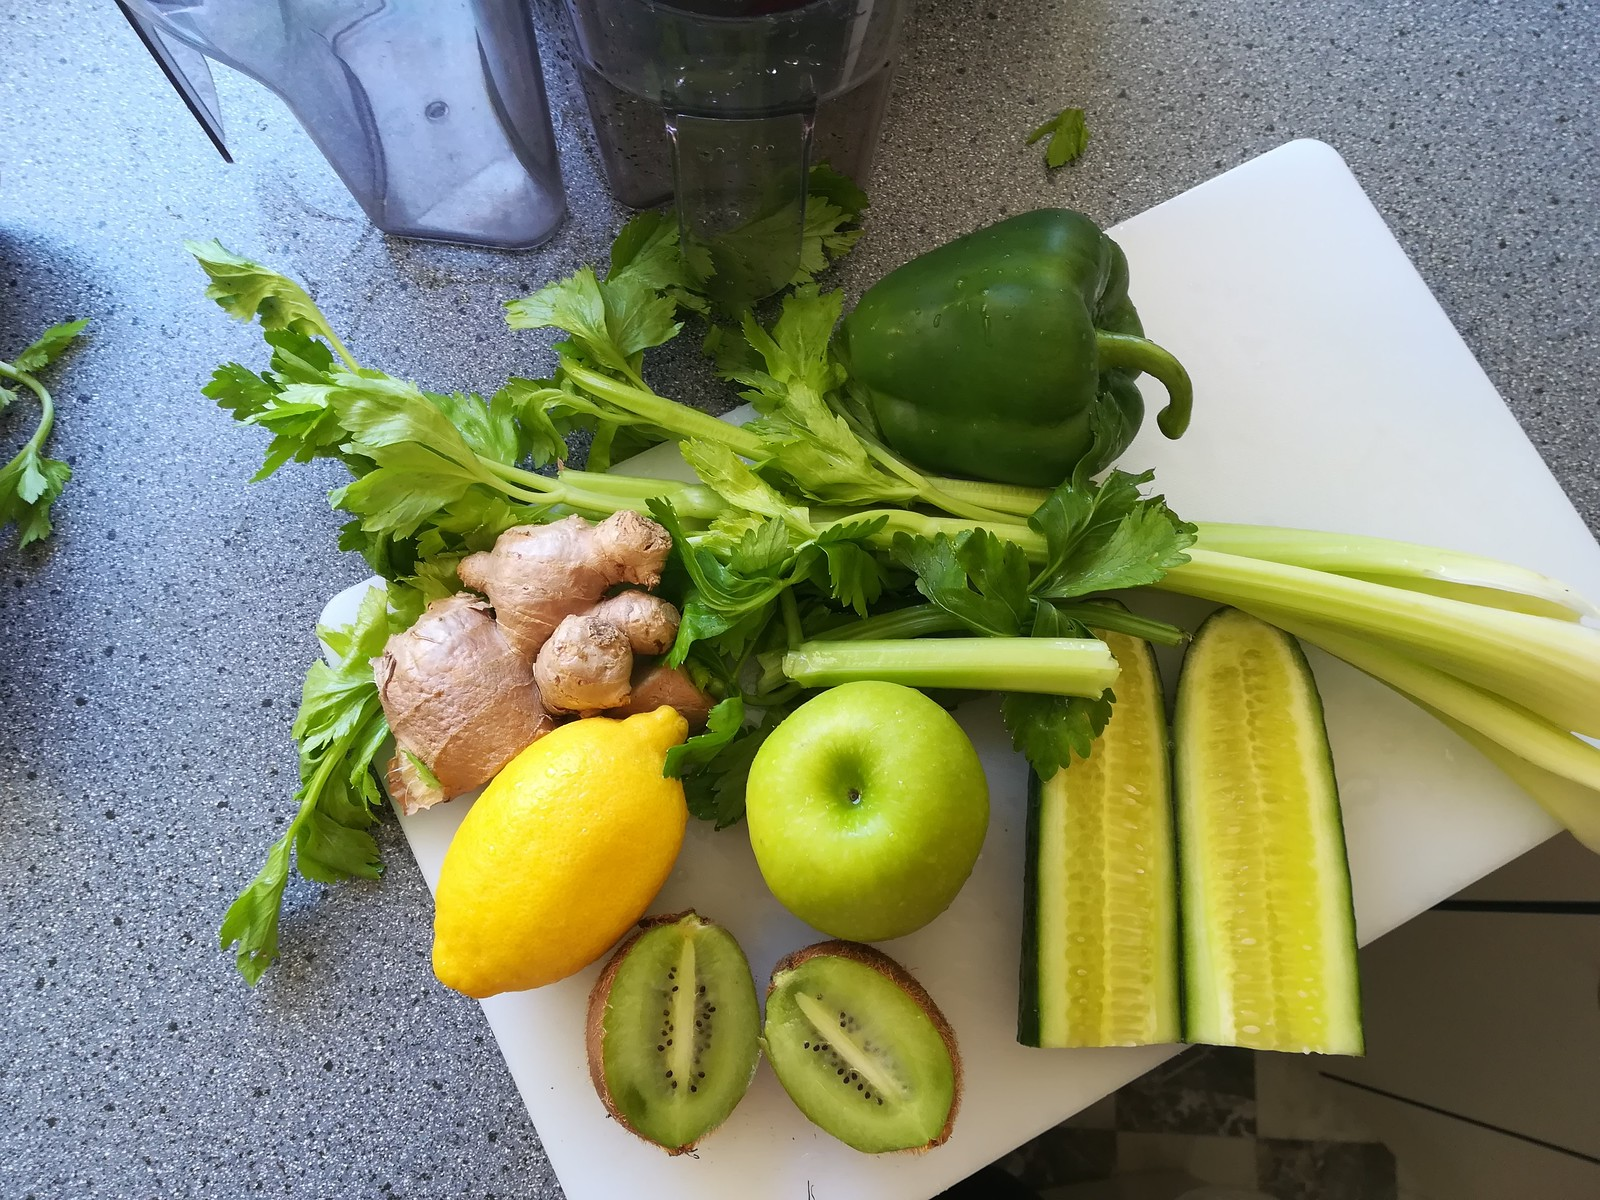 How To Do A 10 Day Juice Fast: A Monster Guide - Bren on The